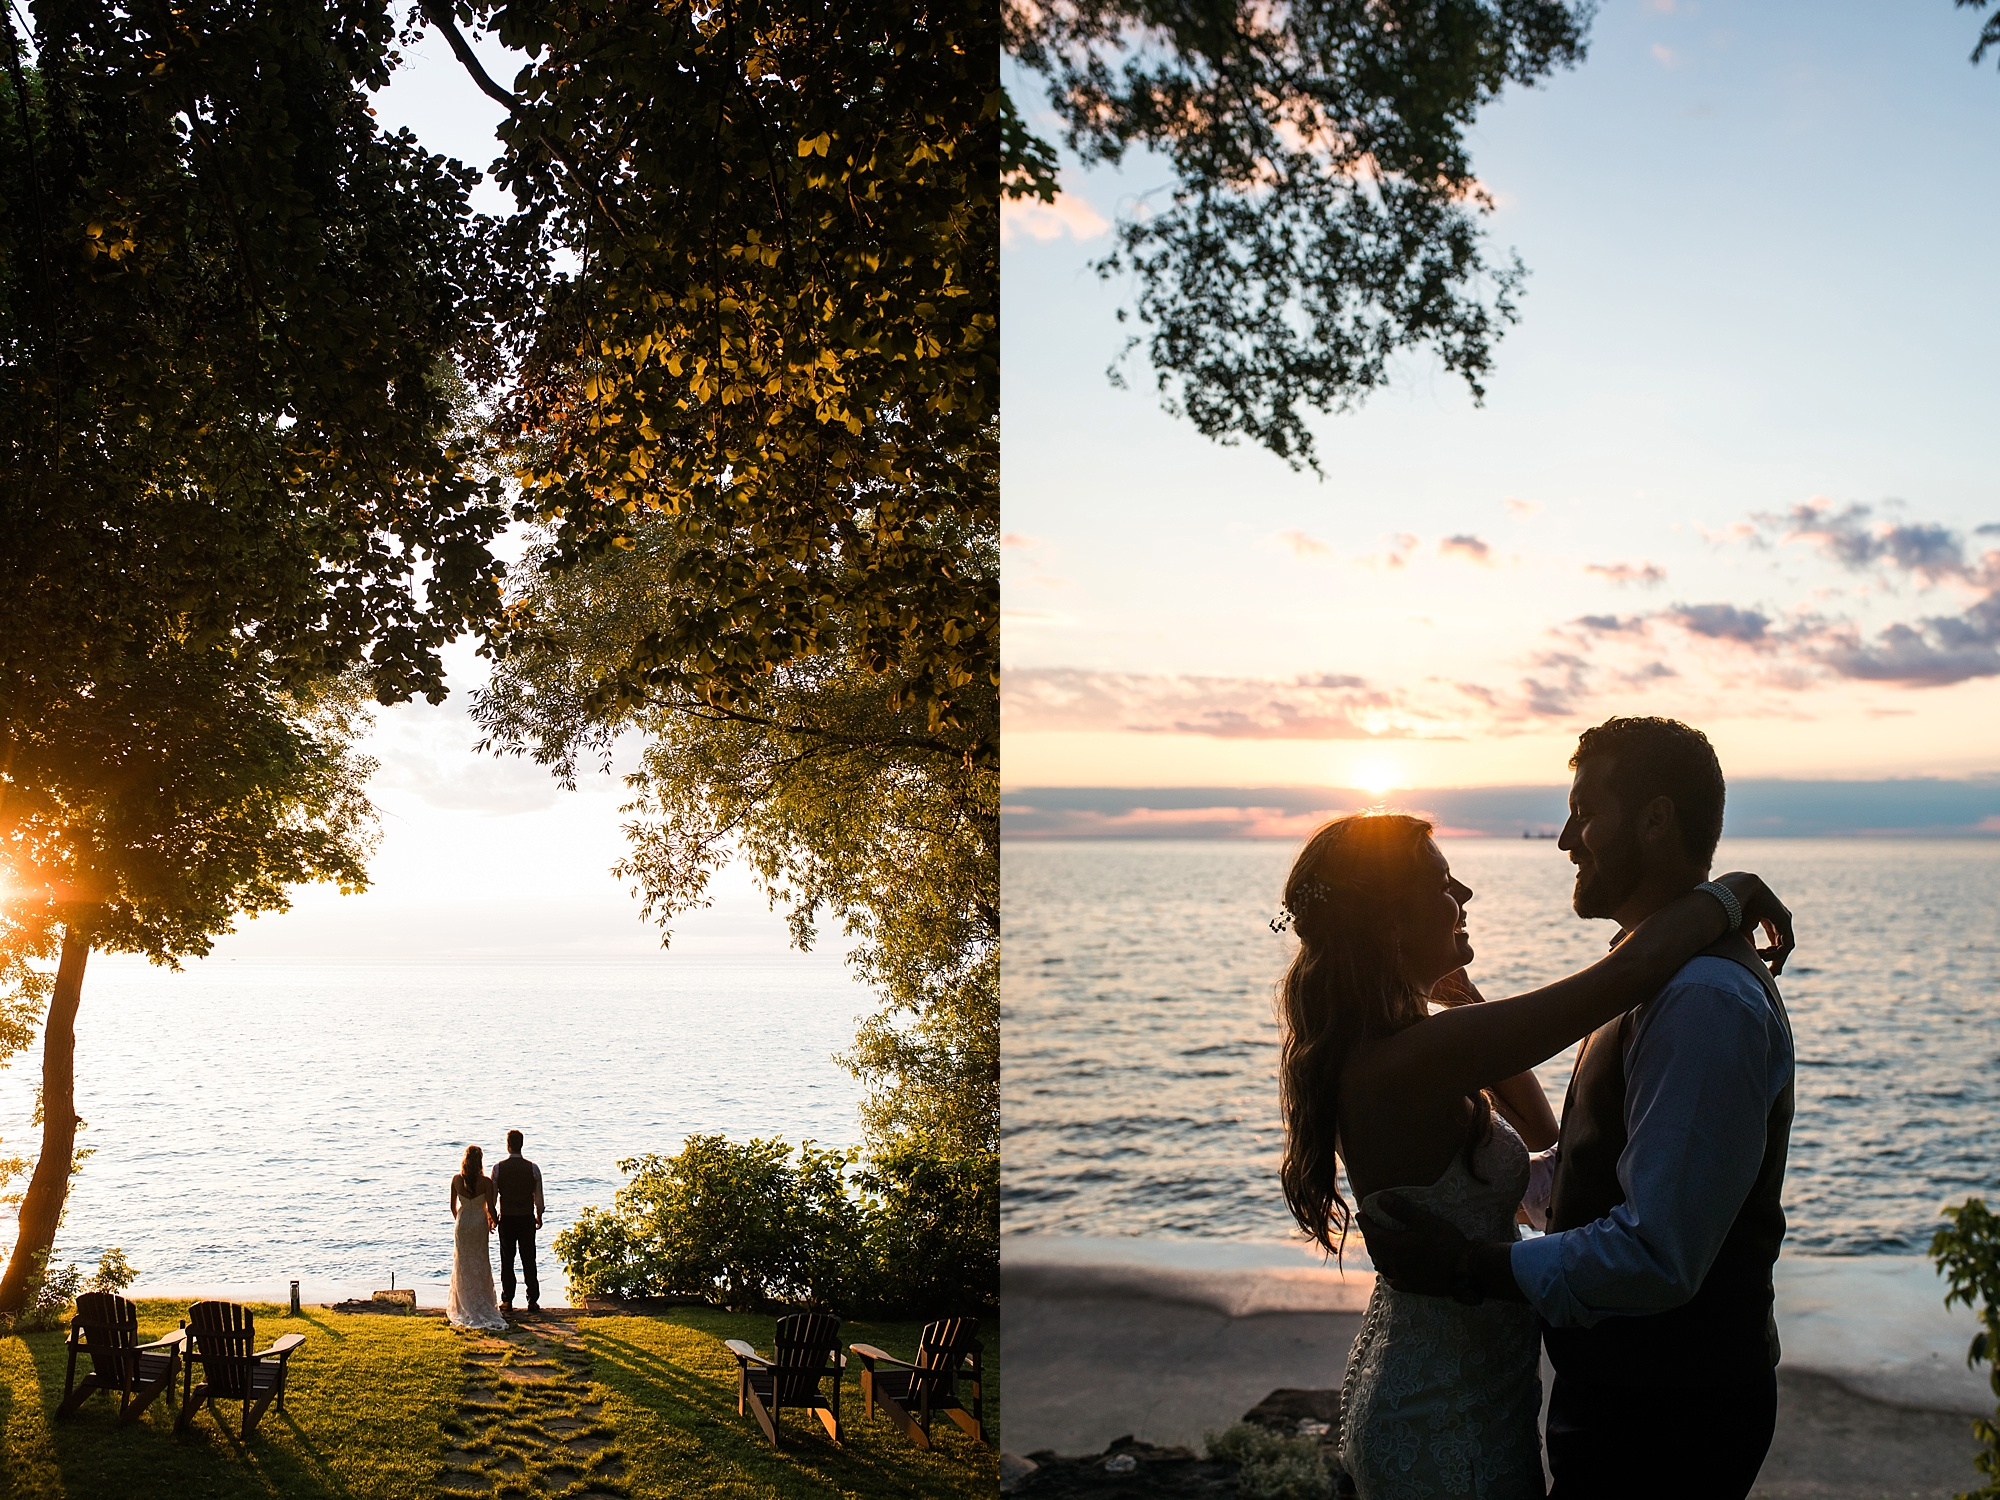 niagaraonthelake-backyardwedding_0064.jpg